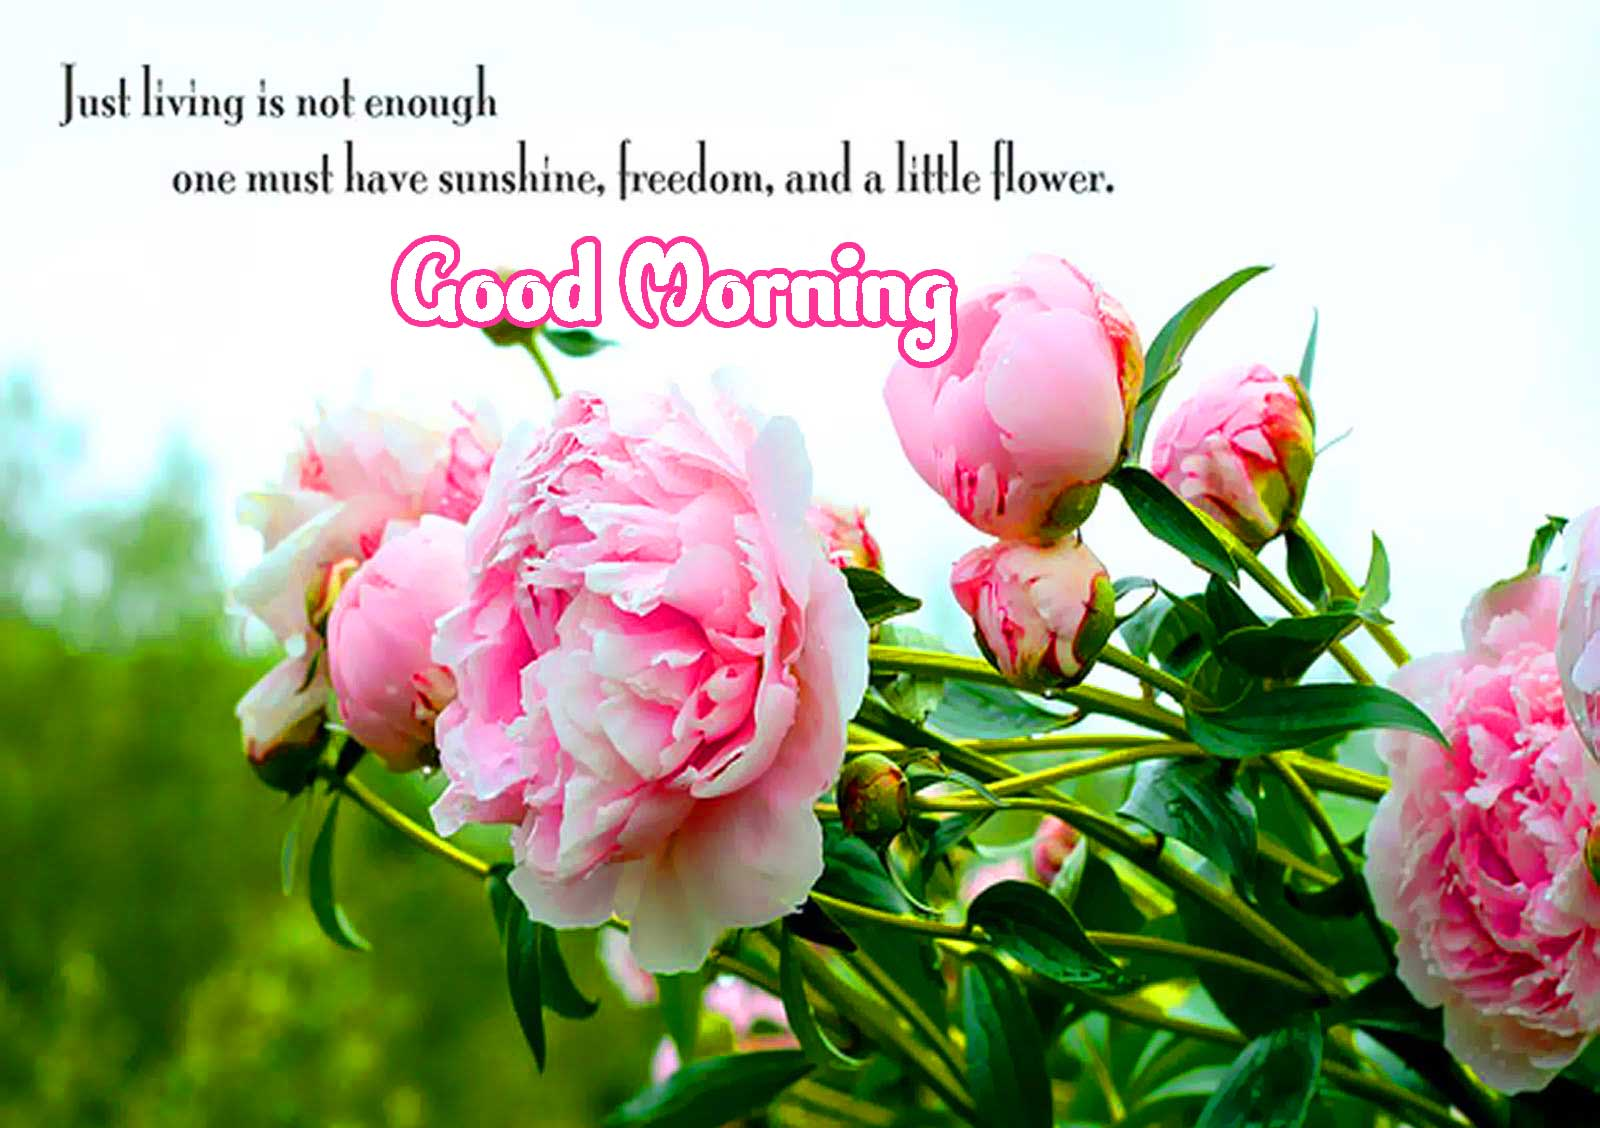 Good Morning Images for Facebook